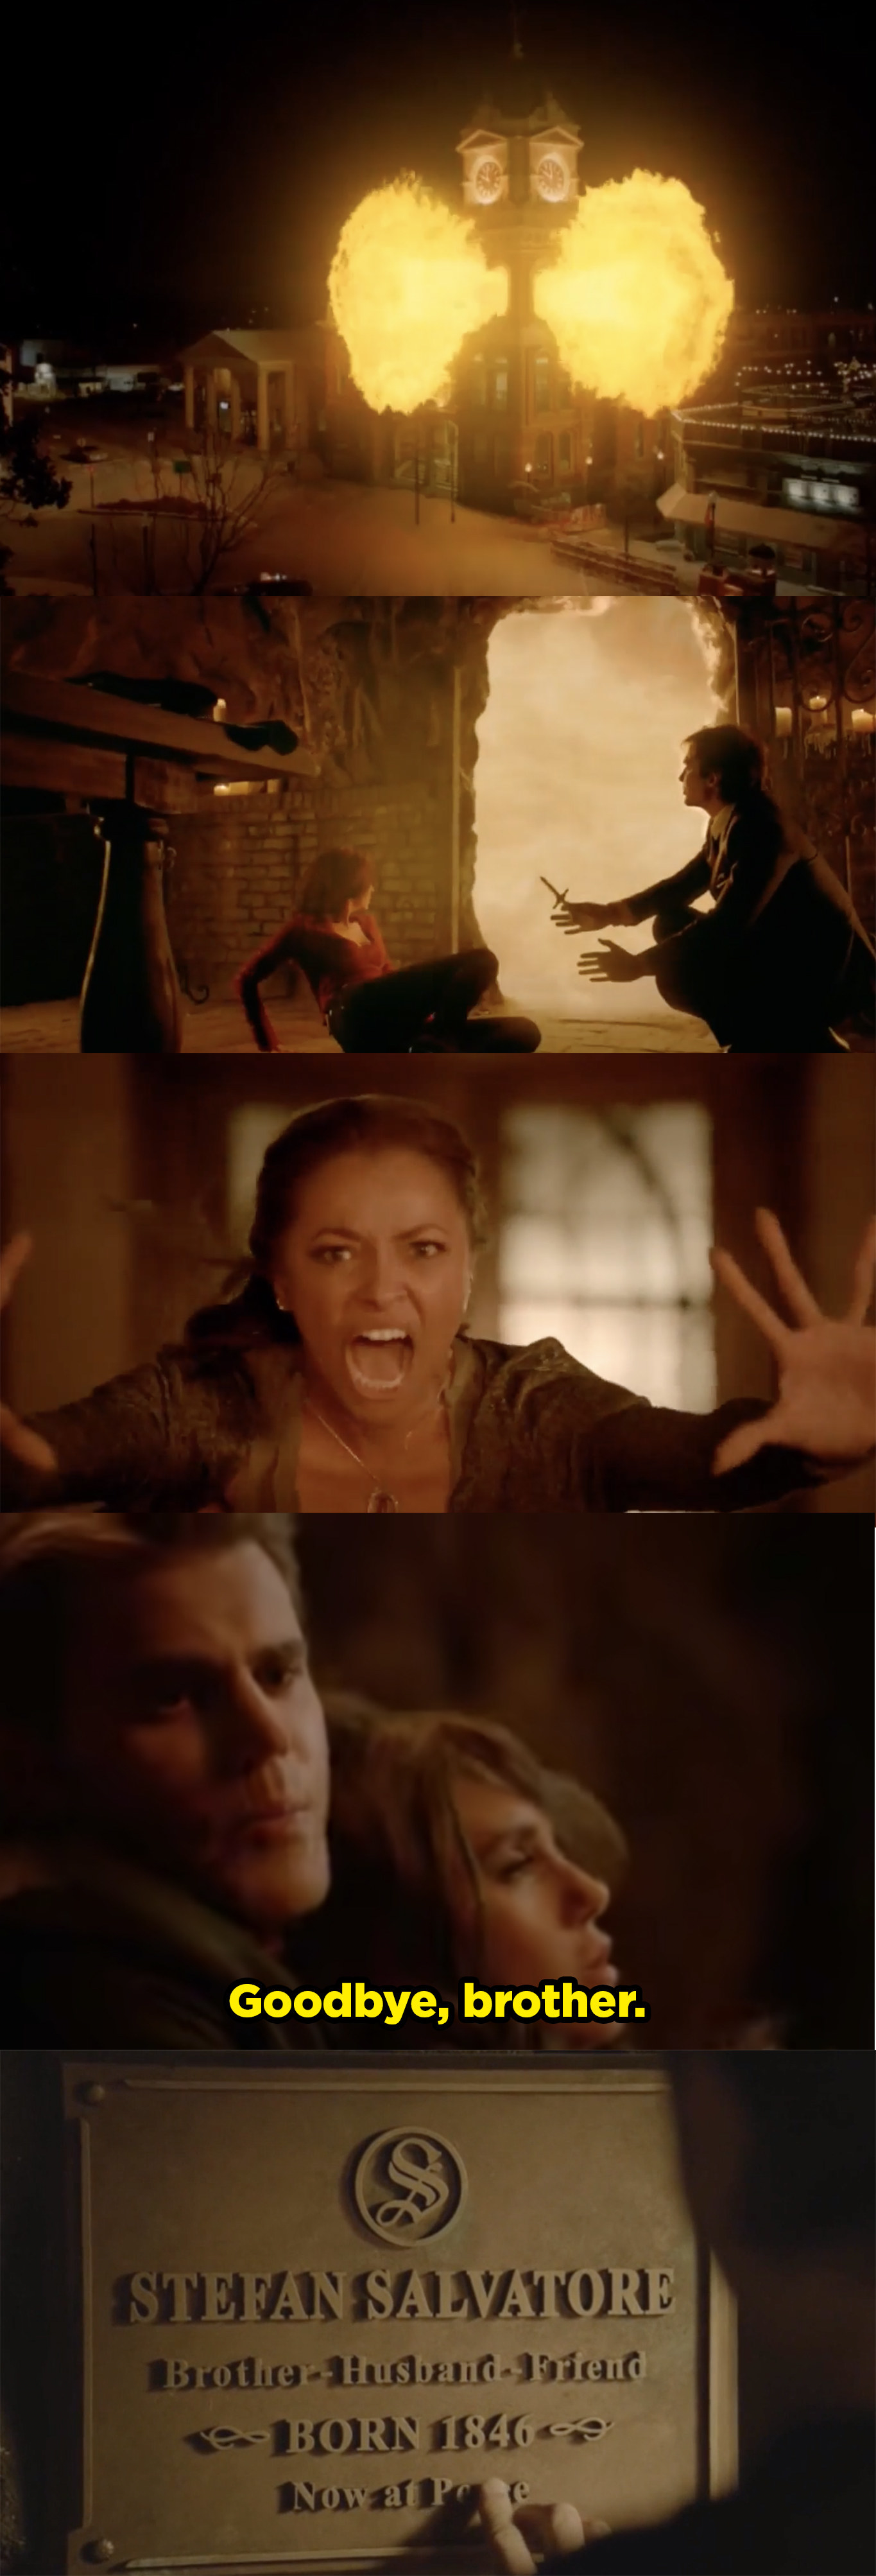 Hell begins to overcome Mystic Falls and Bonnie stops it, then Stefan sacrifices himself in order to kill Katherine, the queen of hell.